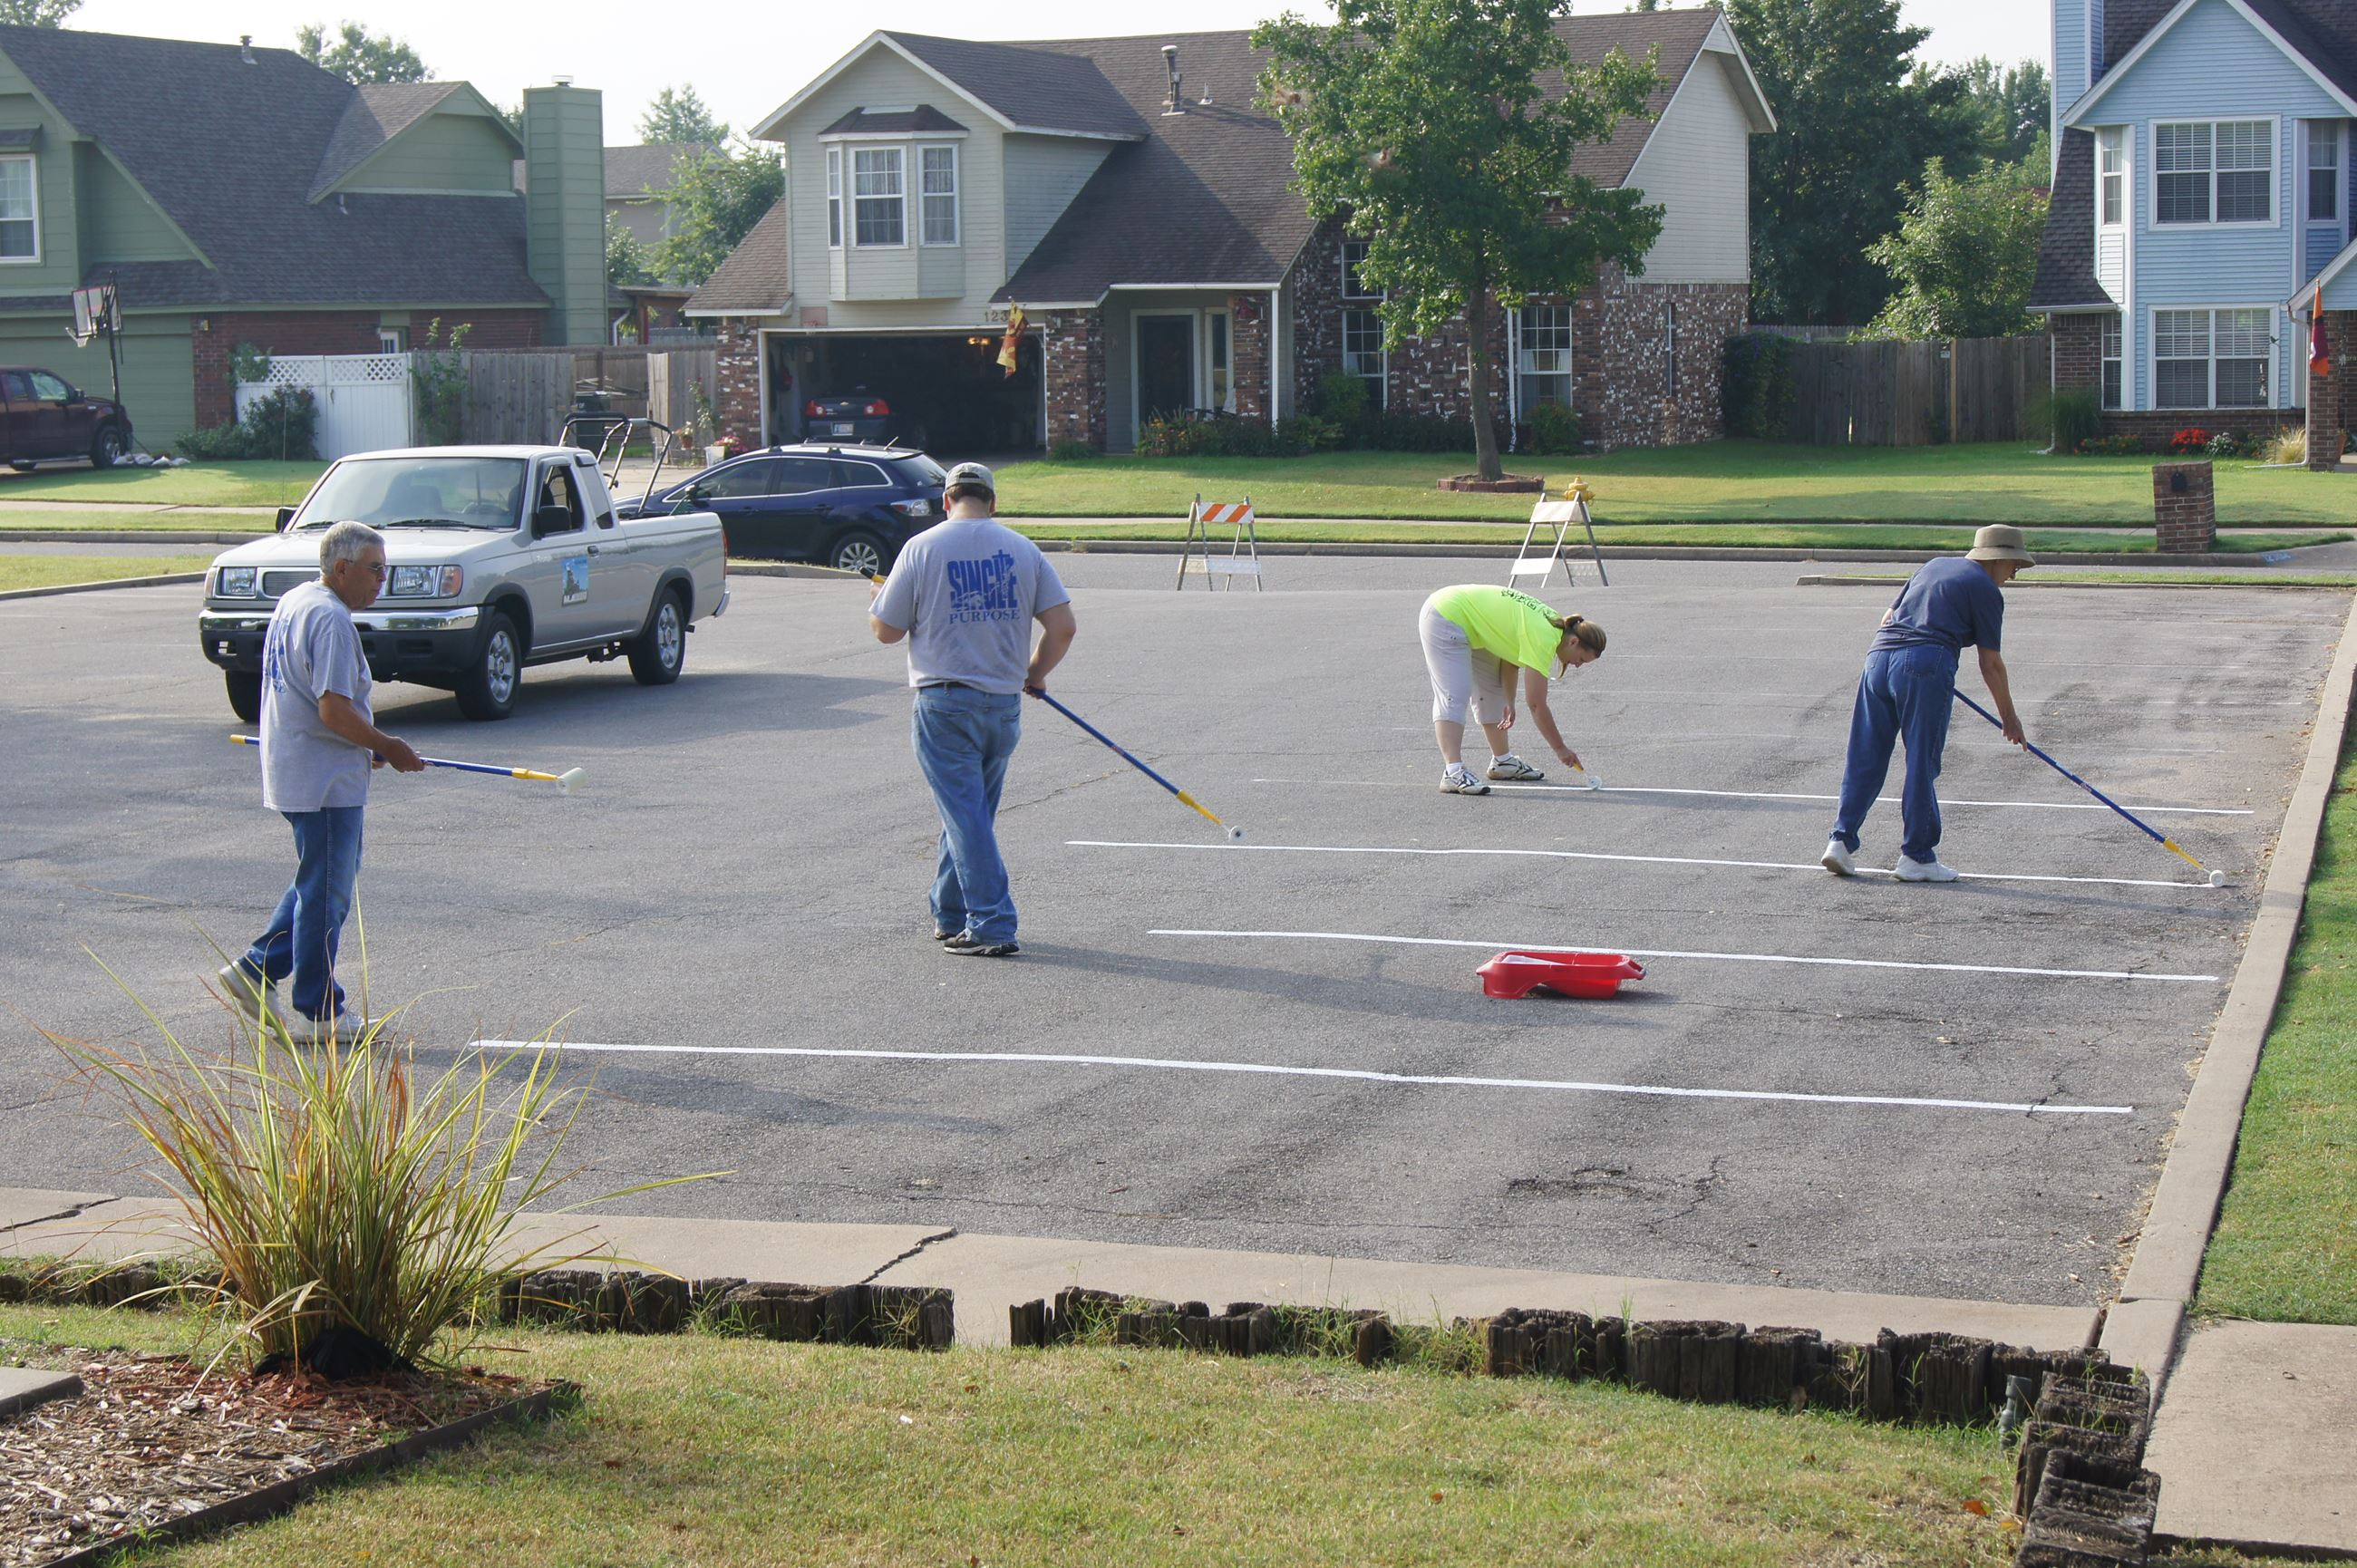 Volunteers painting parking lot stripes at park